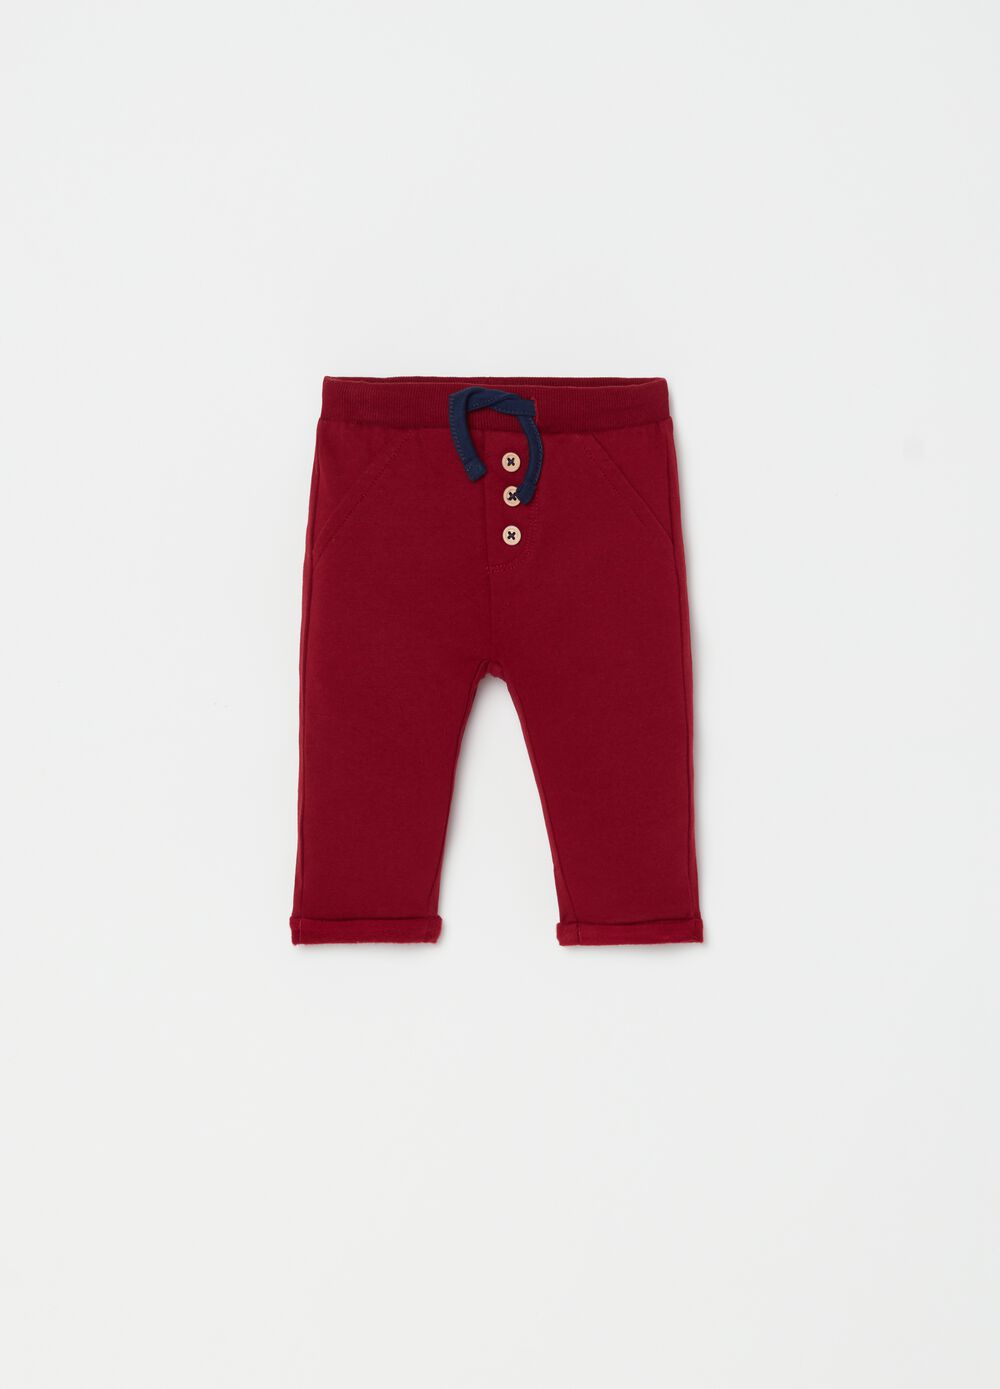 100% organic cotton trousers with drawstring